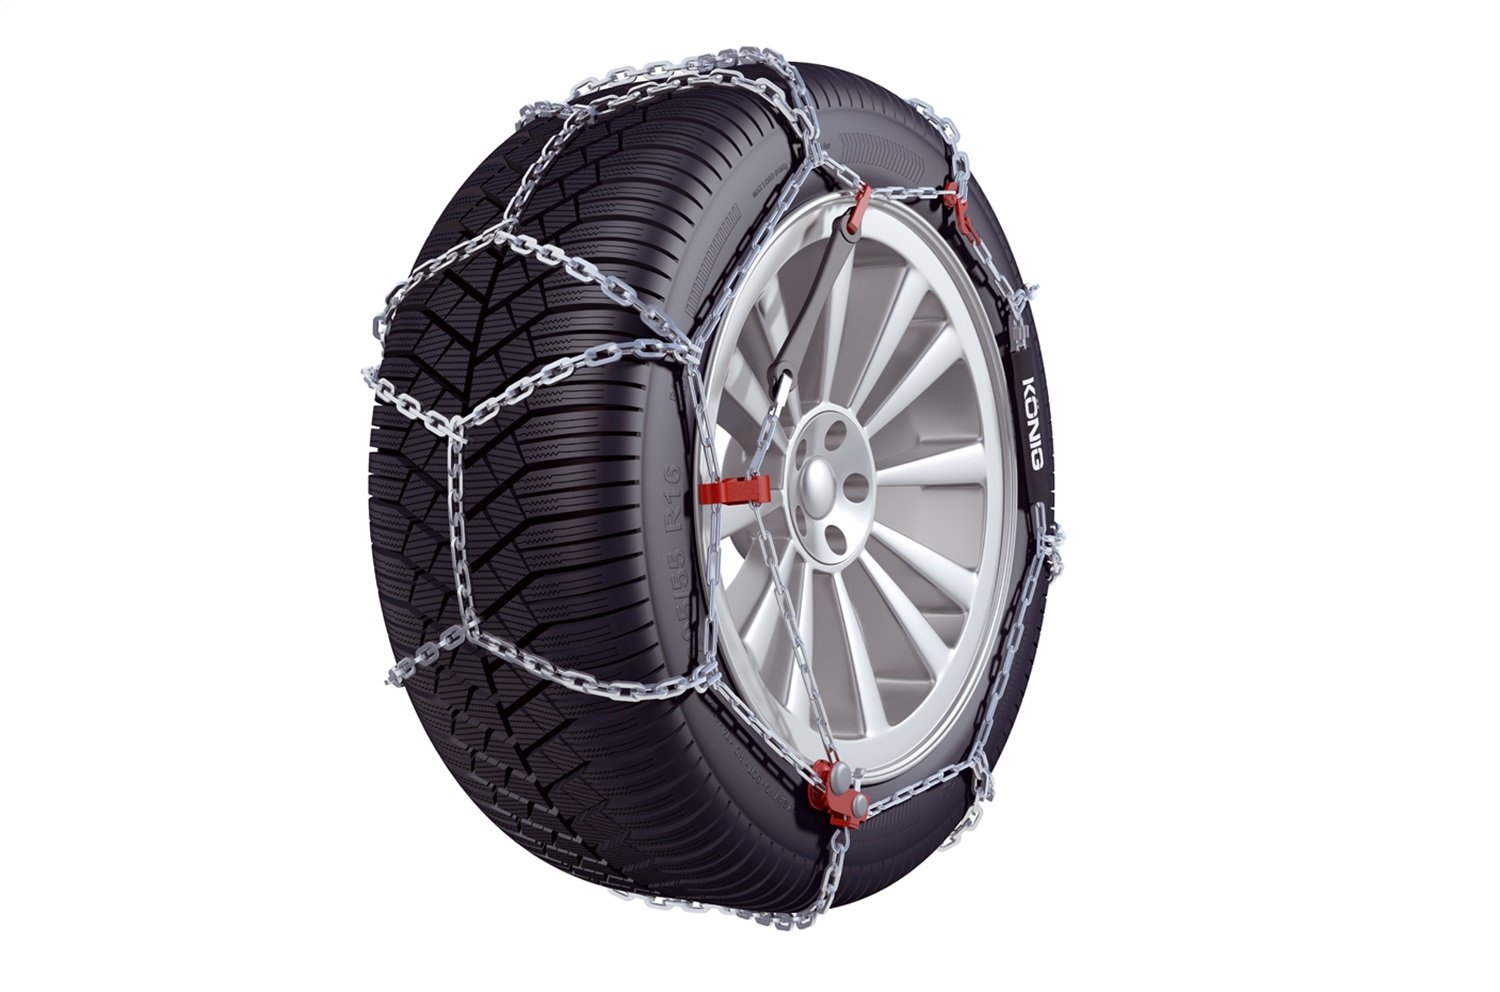 Konig CB-12 080 Snow chains, set of 2